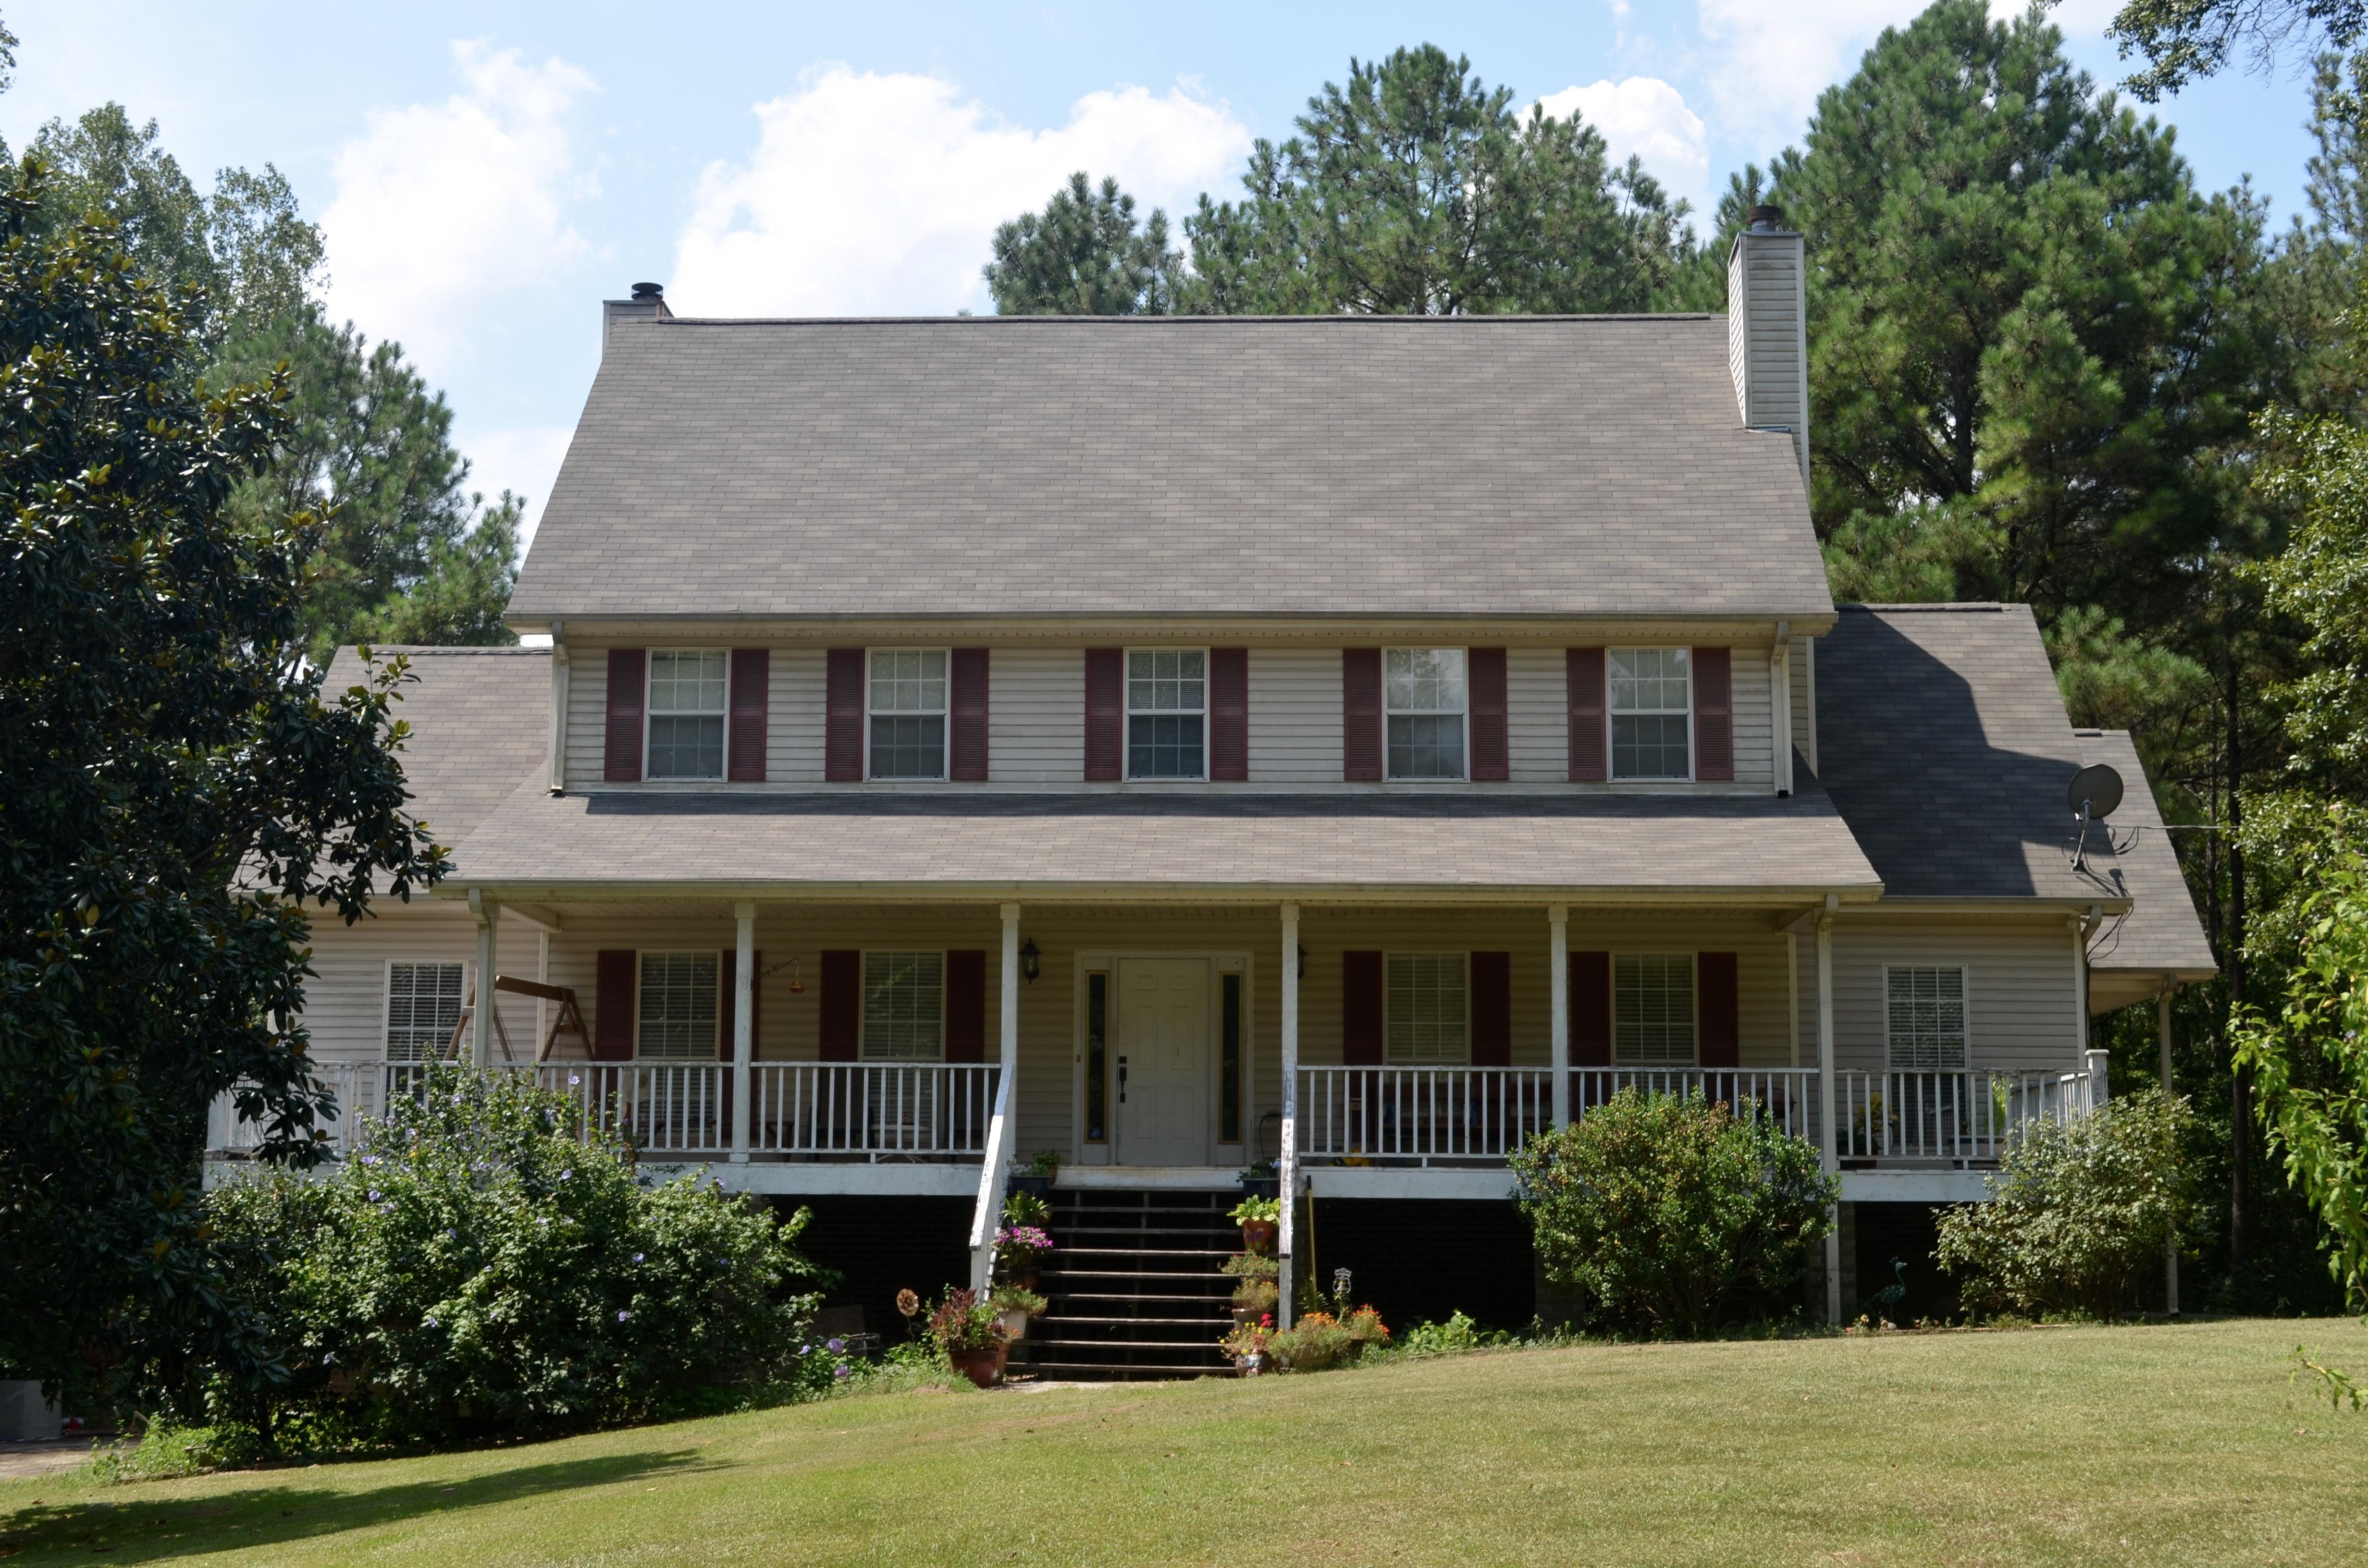 Certainteed XT25 3 tab shingles over synthetic underlayment installed by Capstone Roofing, LLC.